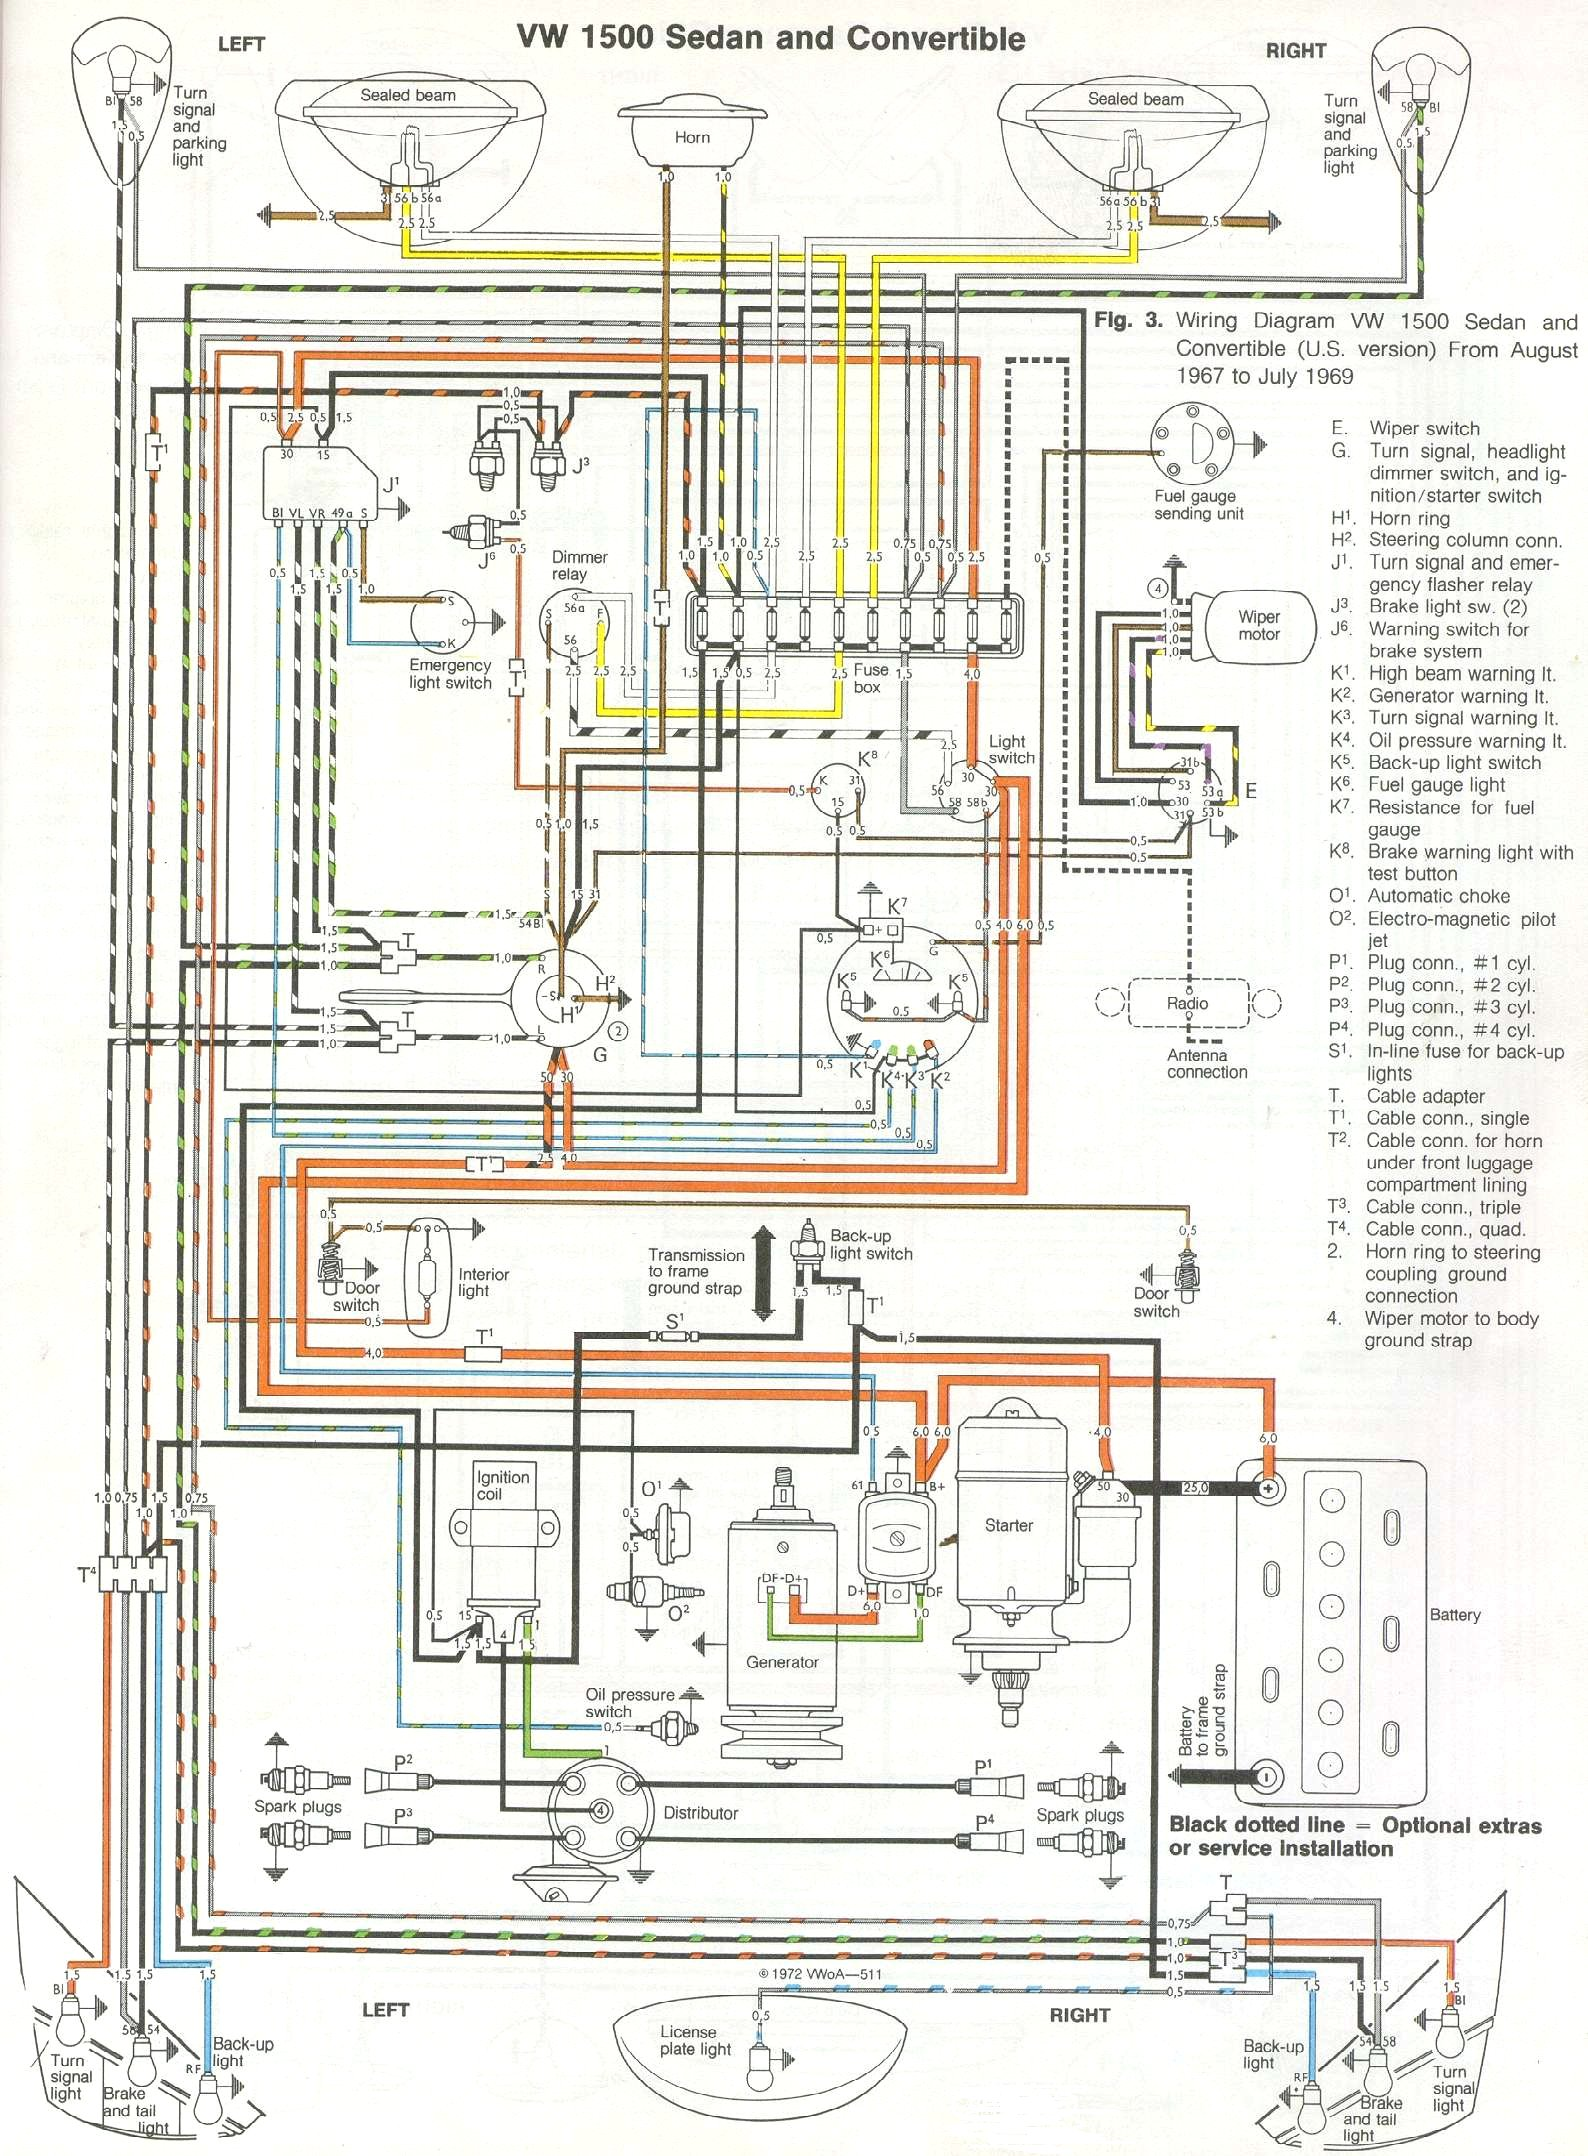 bug_6869 1969 71 beetle wiring diagram thegoldenbug com 1970 vw bug wiring diagram at fashall.co